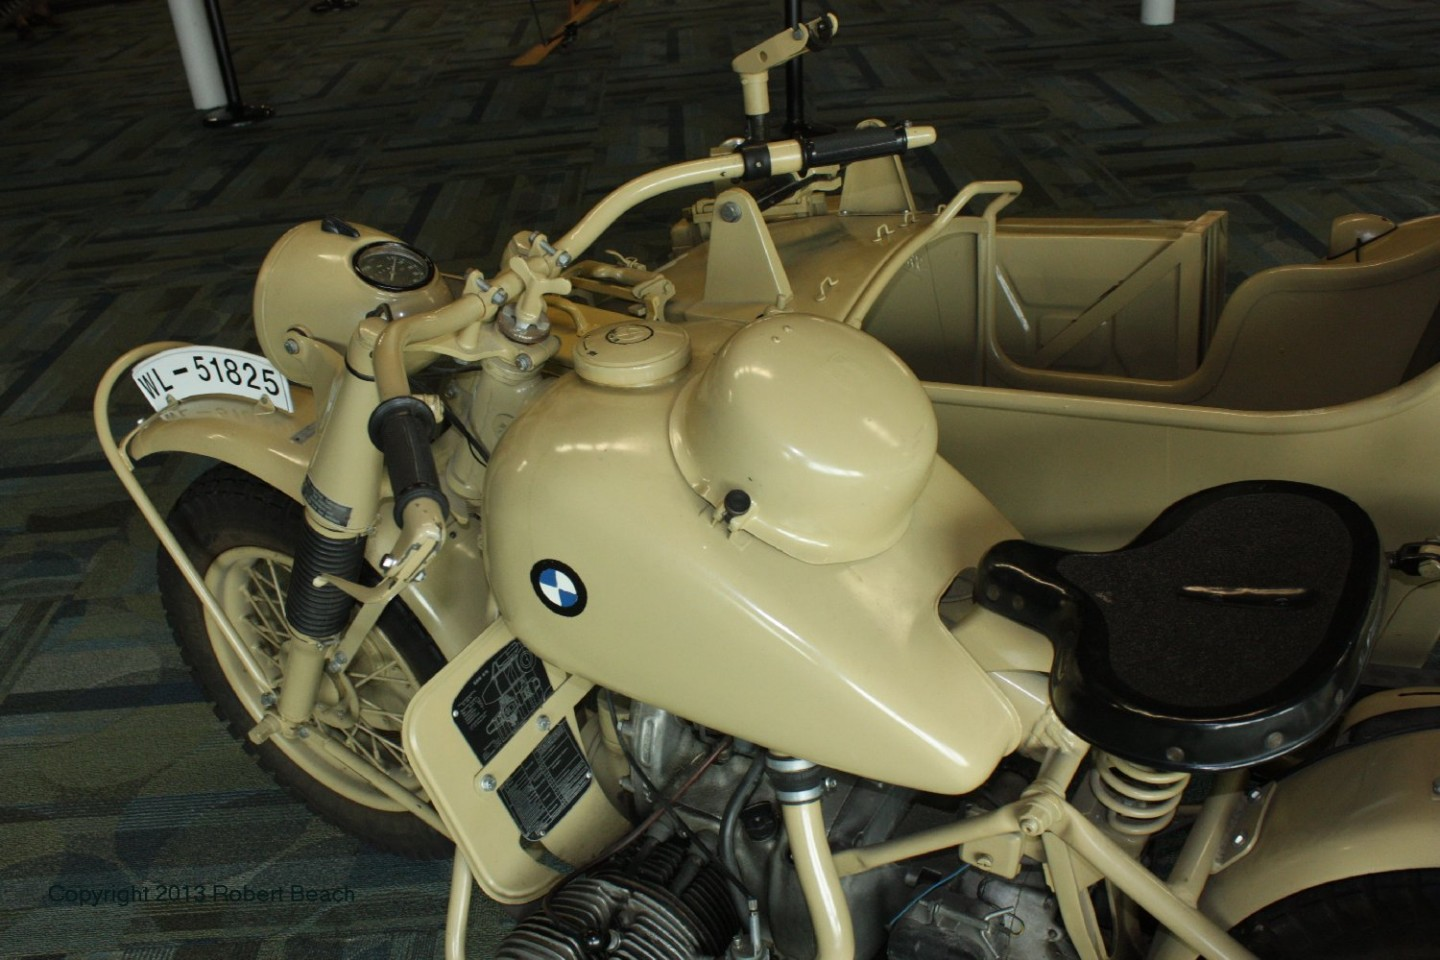 BMW_Mtrcycle_sidecar_cycle_top center_frm left